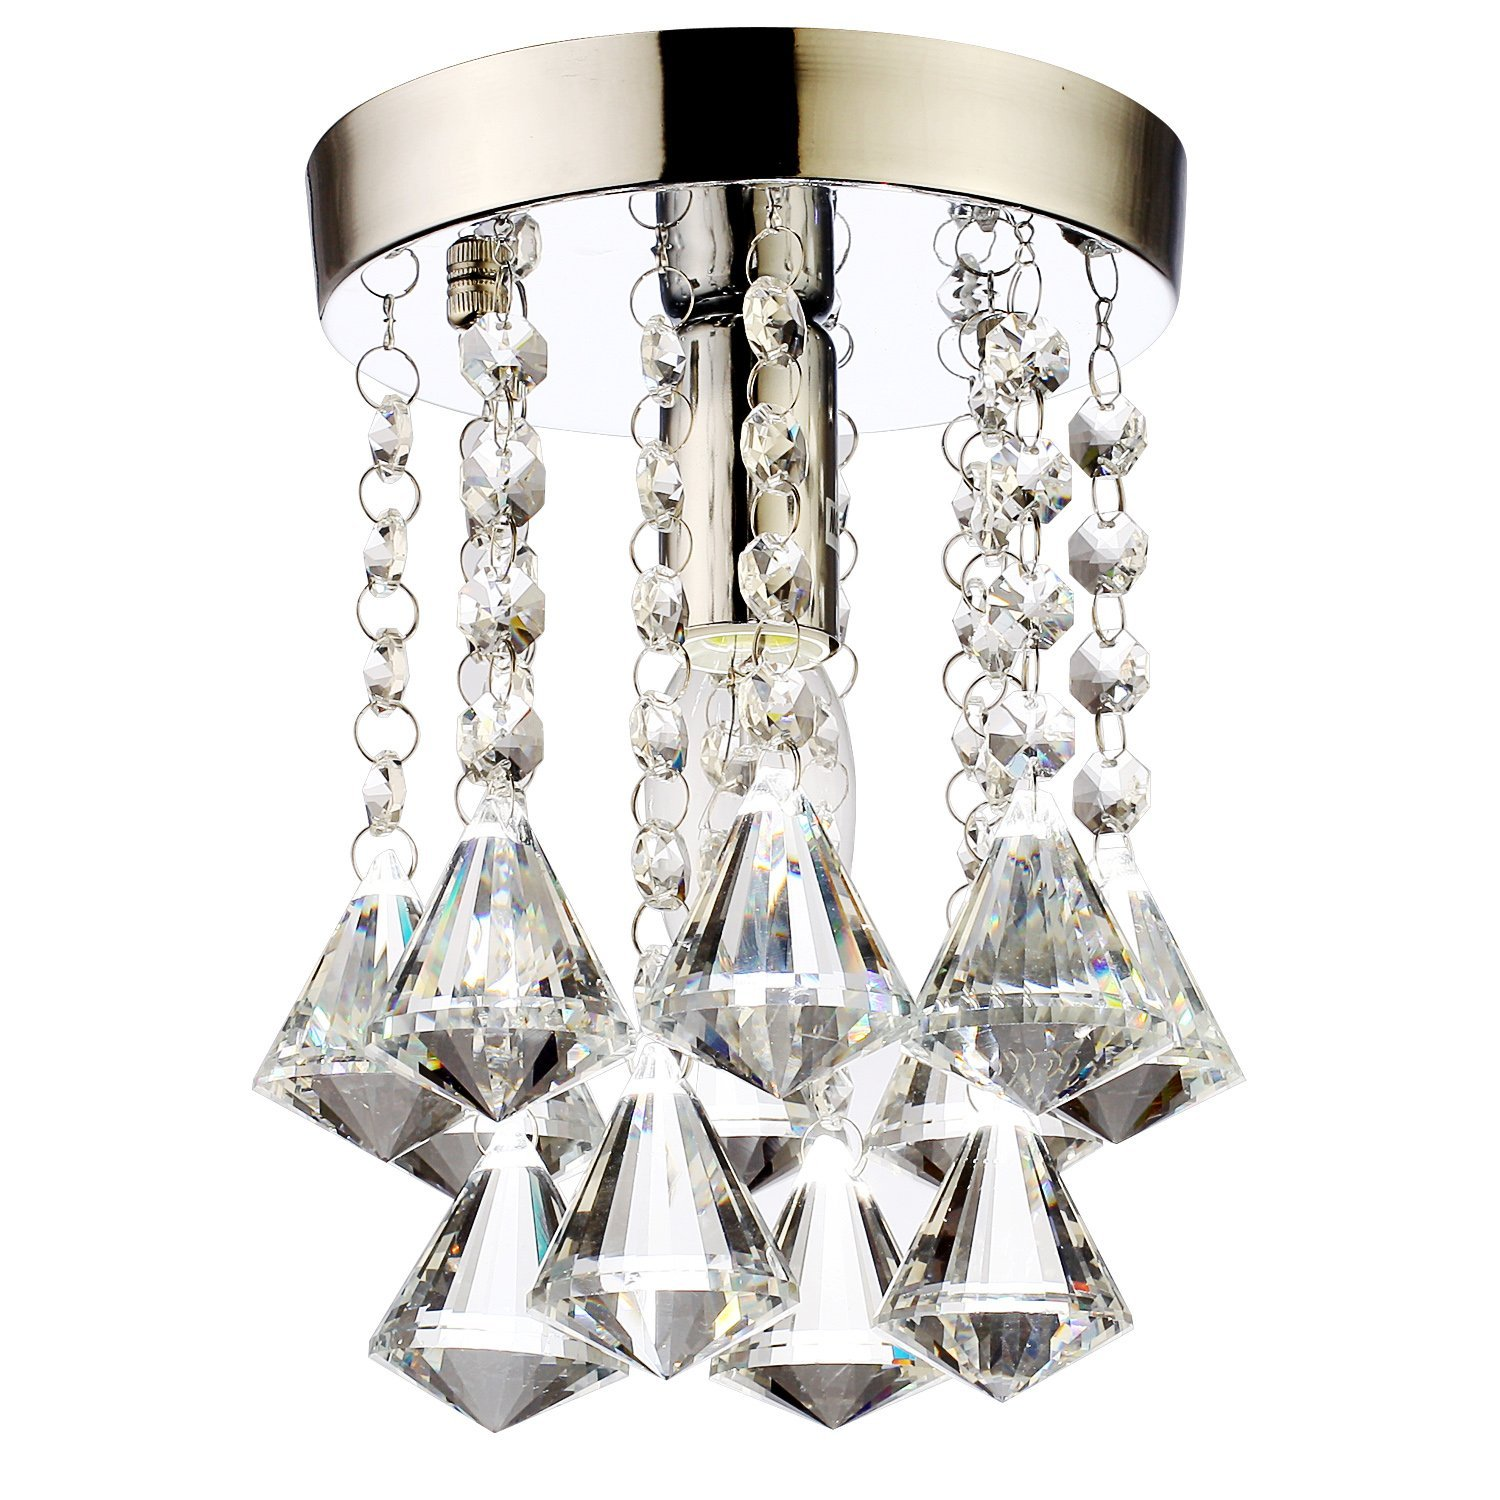 Modern LED crystal chandeliers crystal pendant lamp Aisle lights Mini Modern Chandelier Rain Drop Lighting K9 Crystal 110V-260V(China (Mainland))